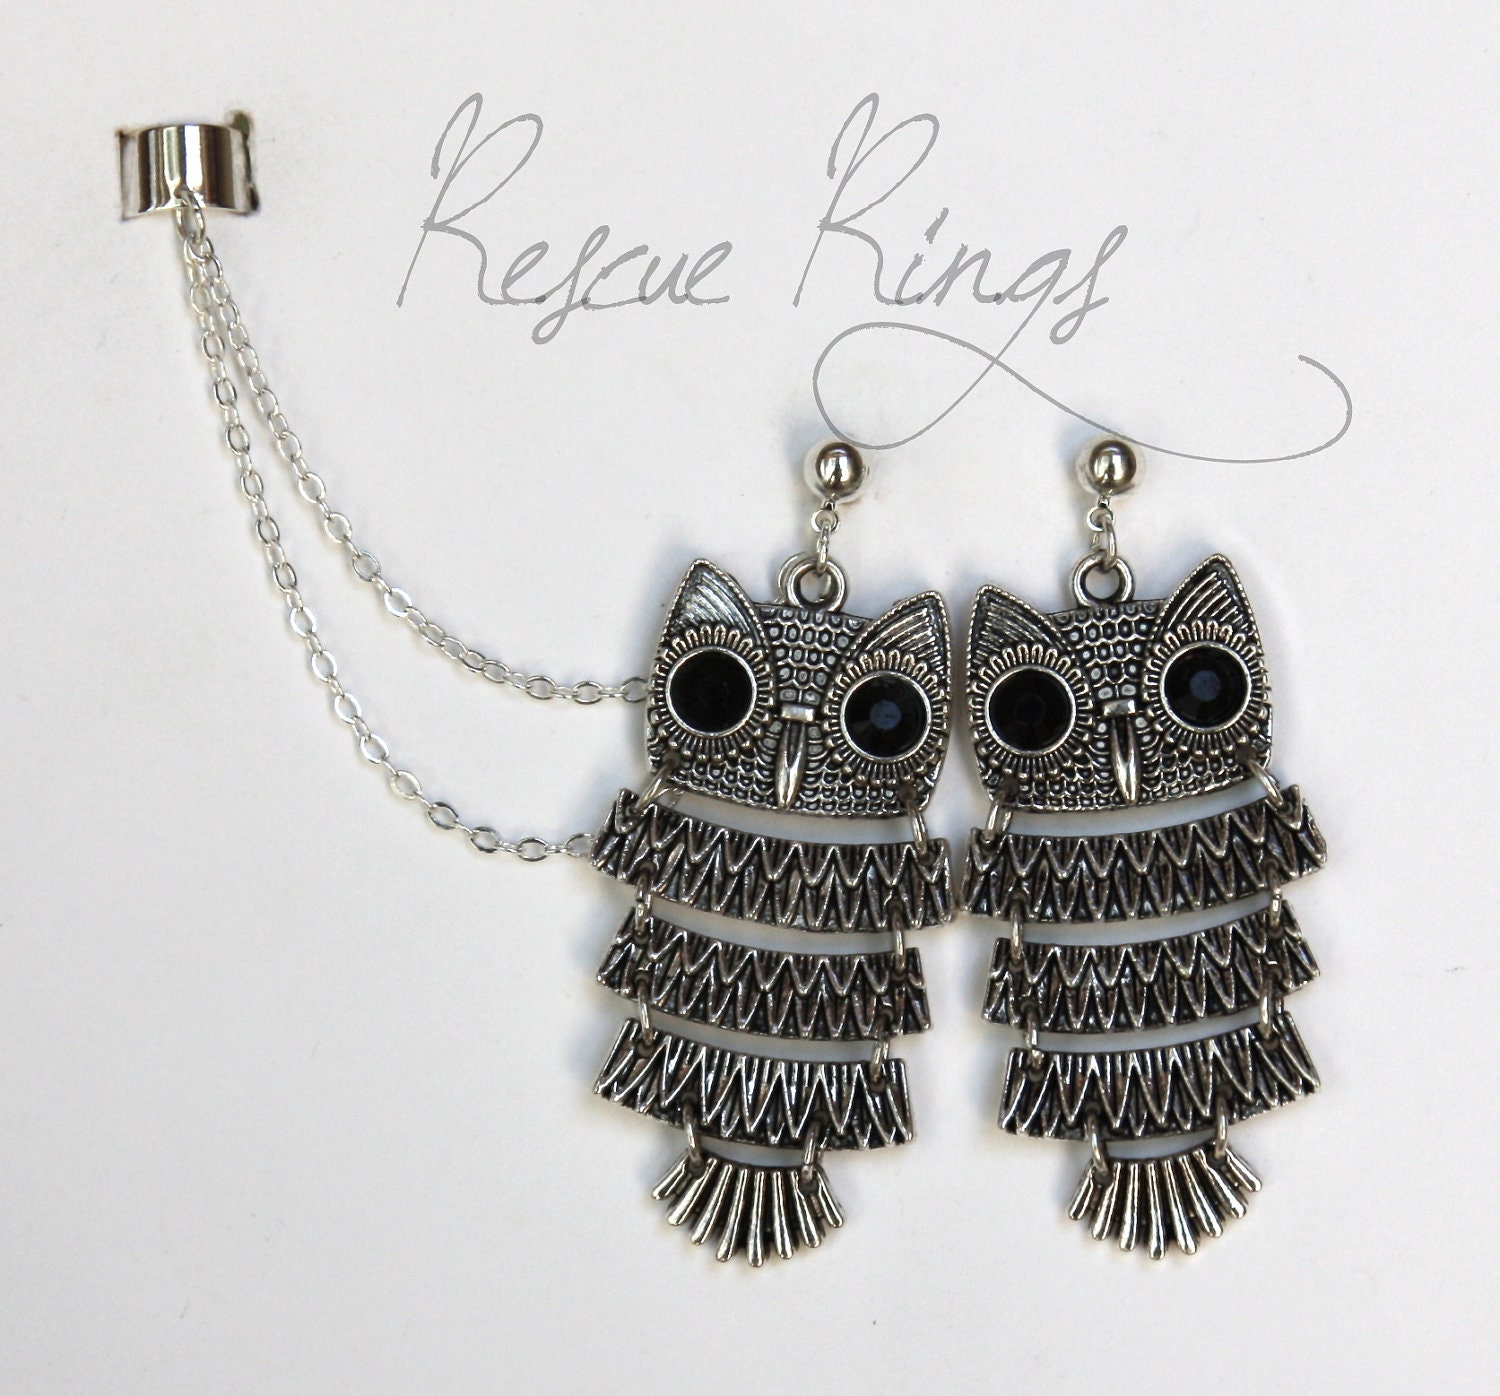 Ear Cuff Earrings With Chain http://www.etsy.com/listing/108360901/owl-double-chain-ear-cuff-earrings